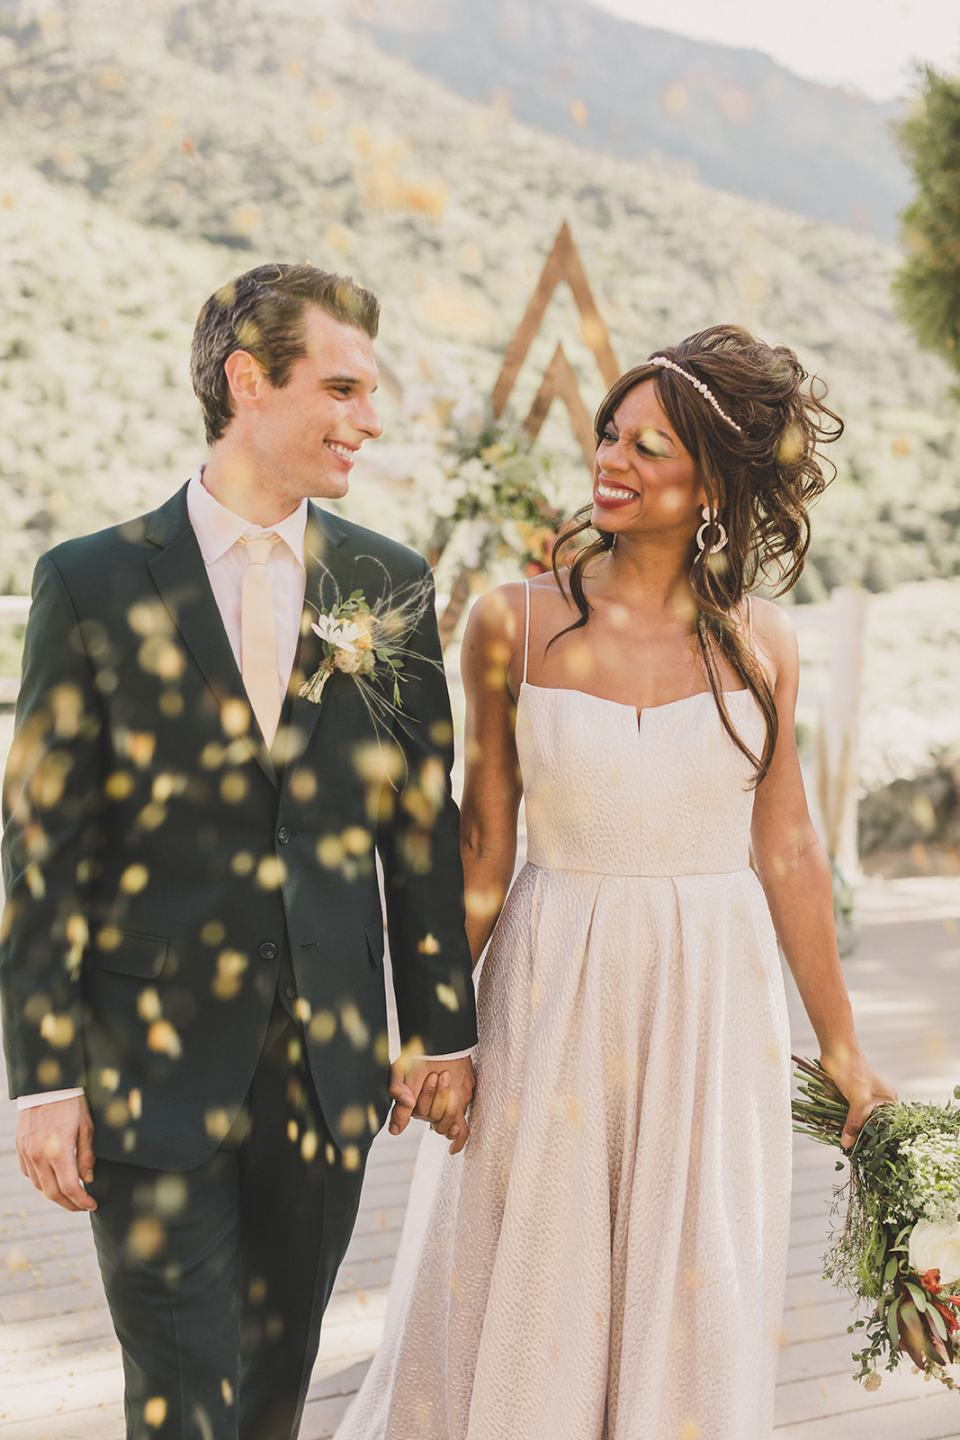 confetti overlay with newlyweds at Mt Charleston photographed by Taylor Made Photography